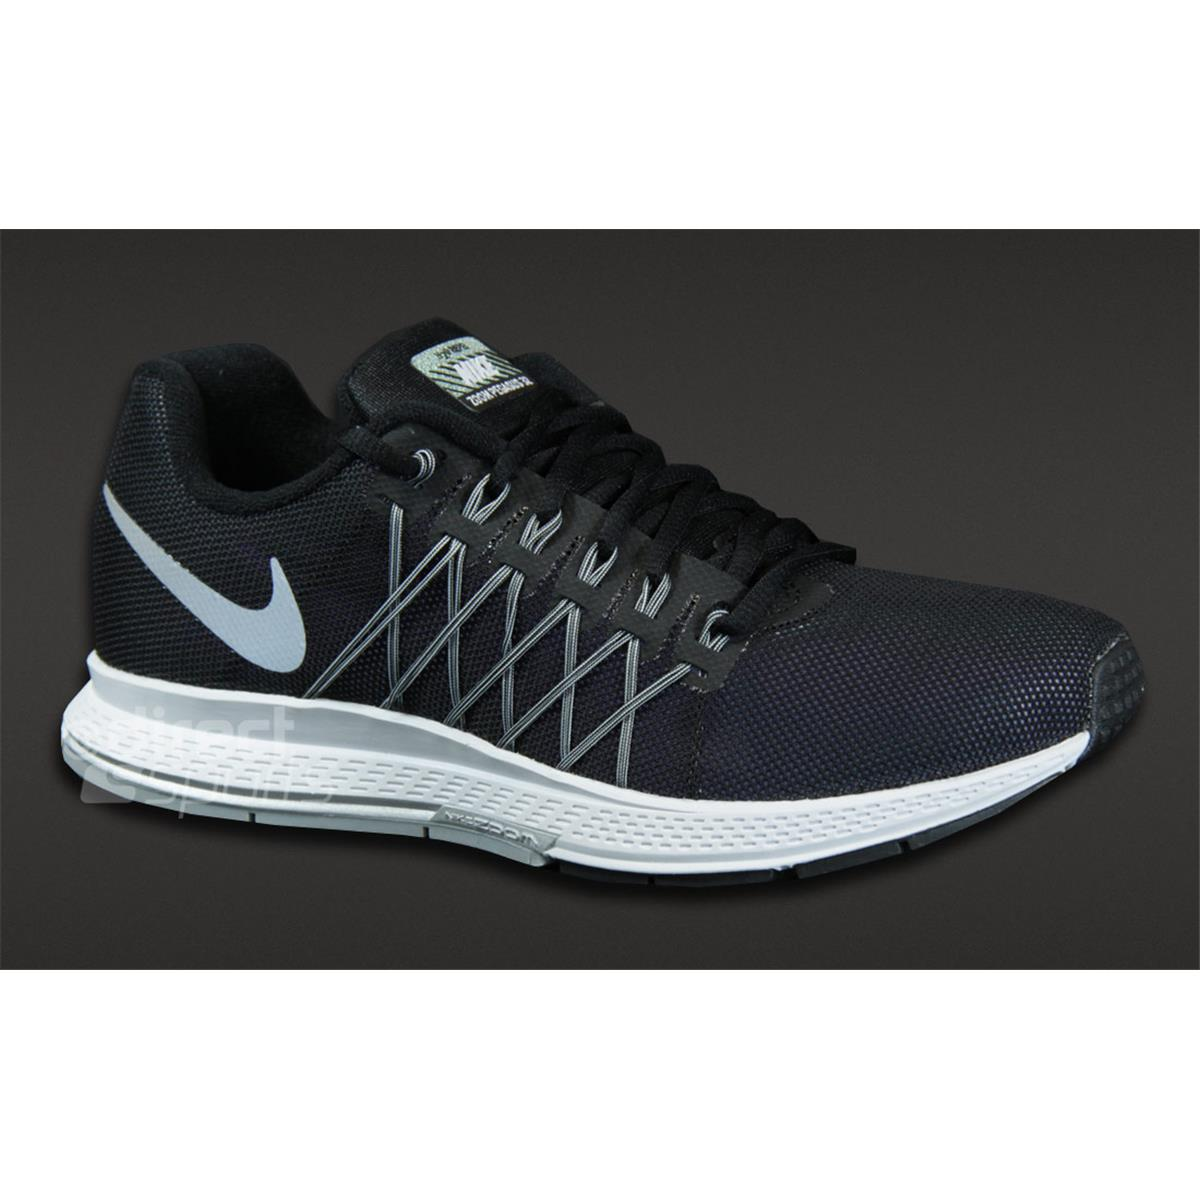 more photos 6efb2 7180f usa fashion nike air zoom pegasus 32 mens online loyal2114 709e8 0ec62  buy nike  air pegasus 31 flash womens 5ae5d 5cff8